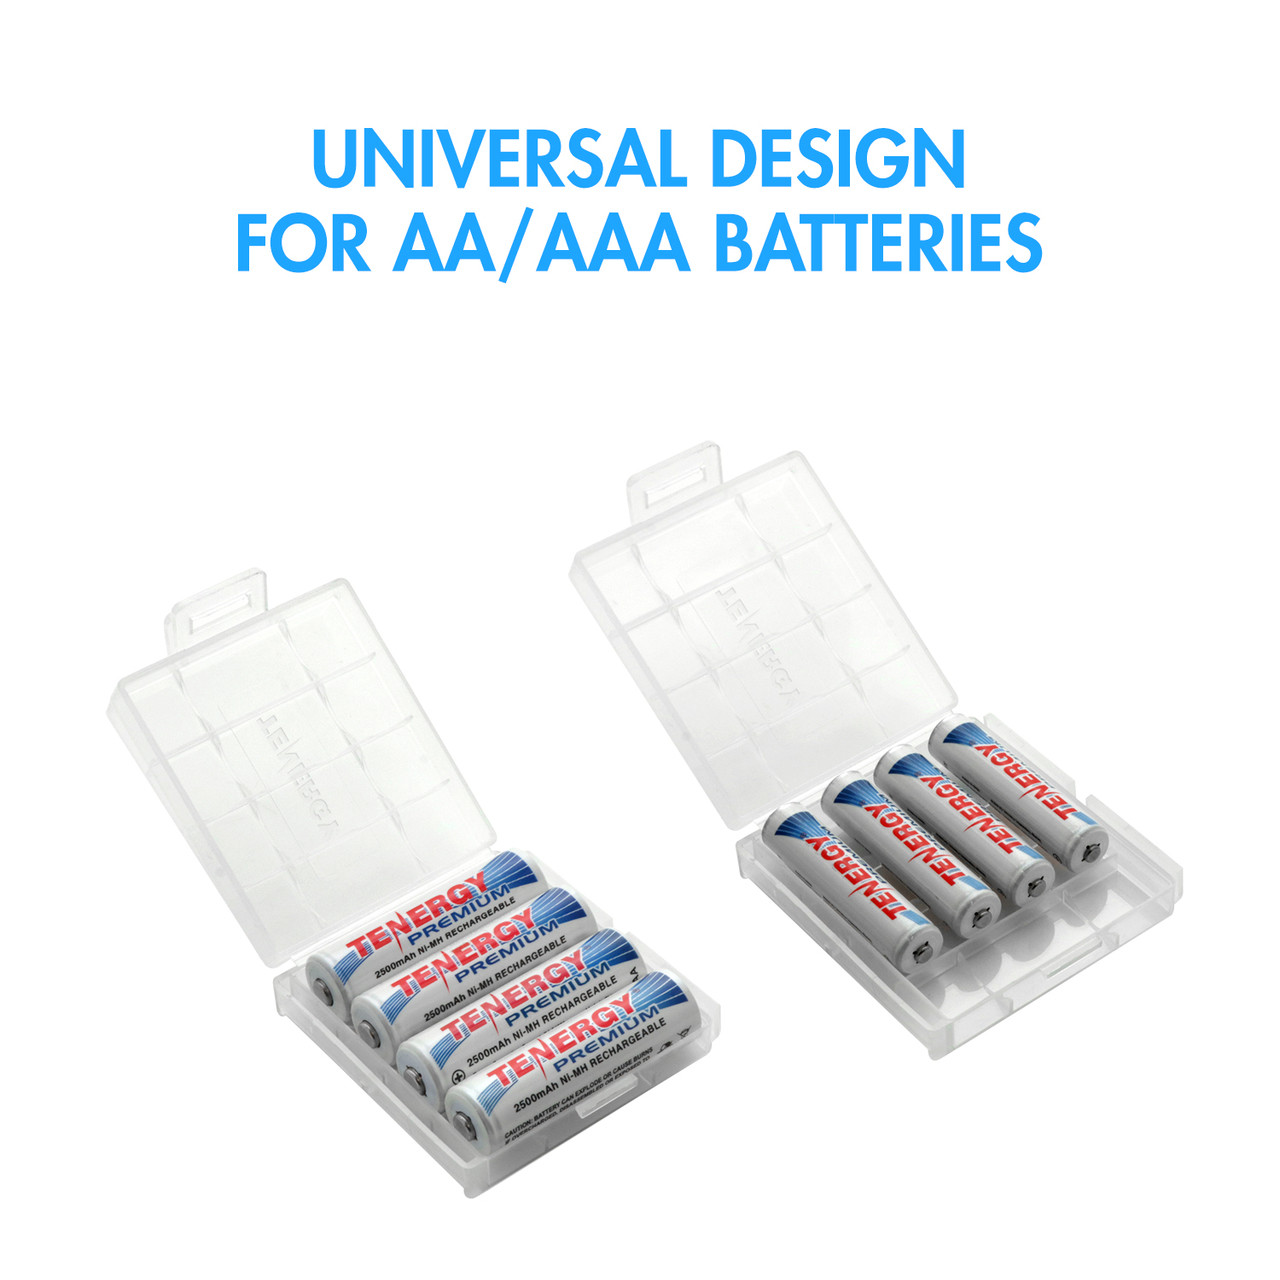 Tenergy Plastic Box Holder for 4 AAA Battery (Batteries sold separately)